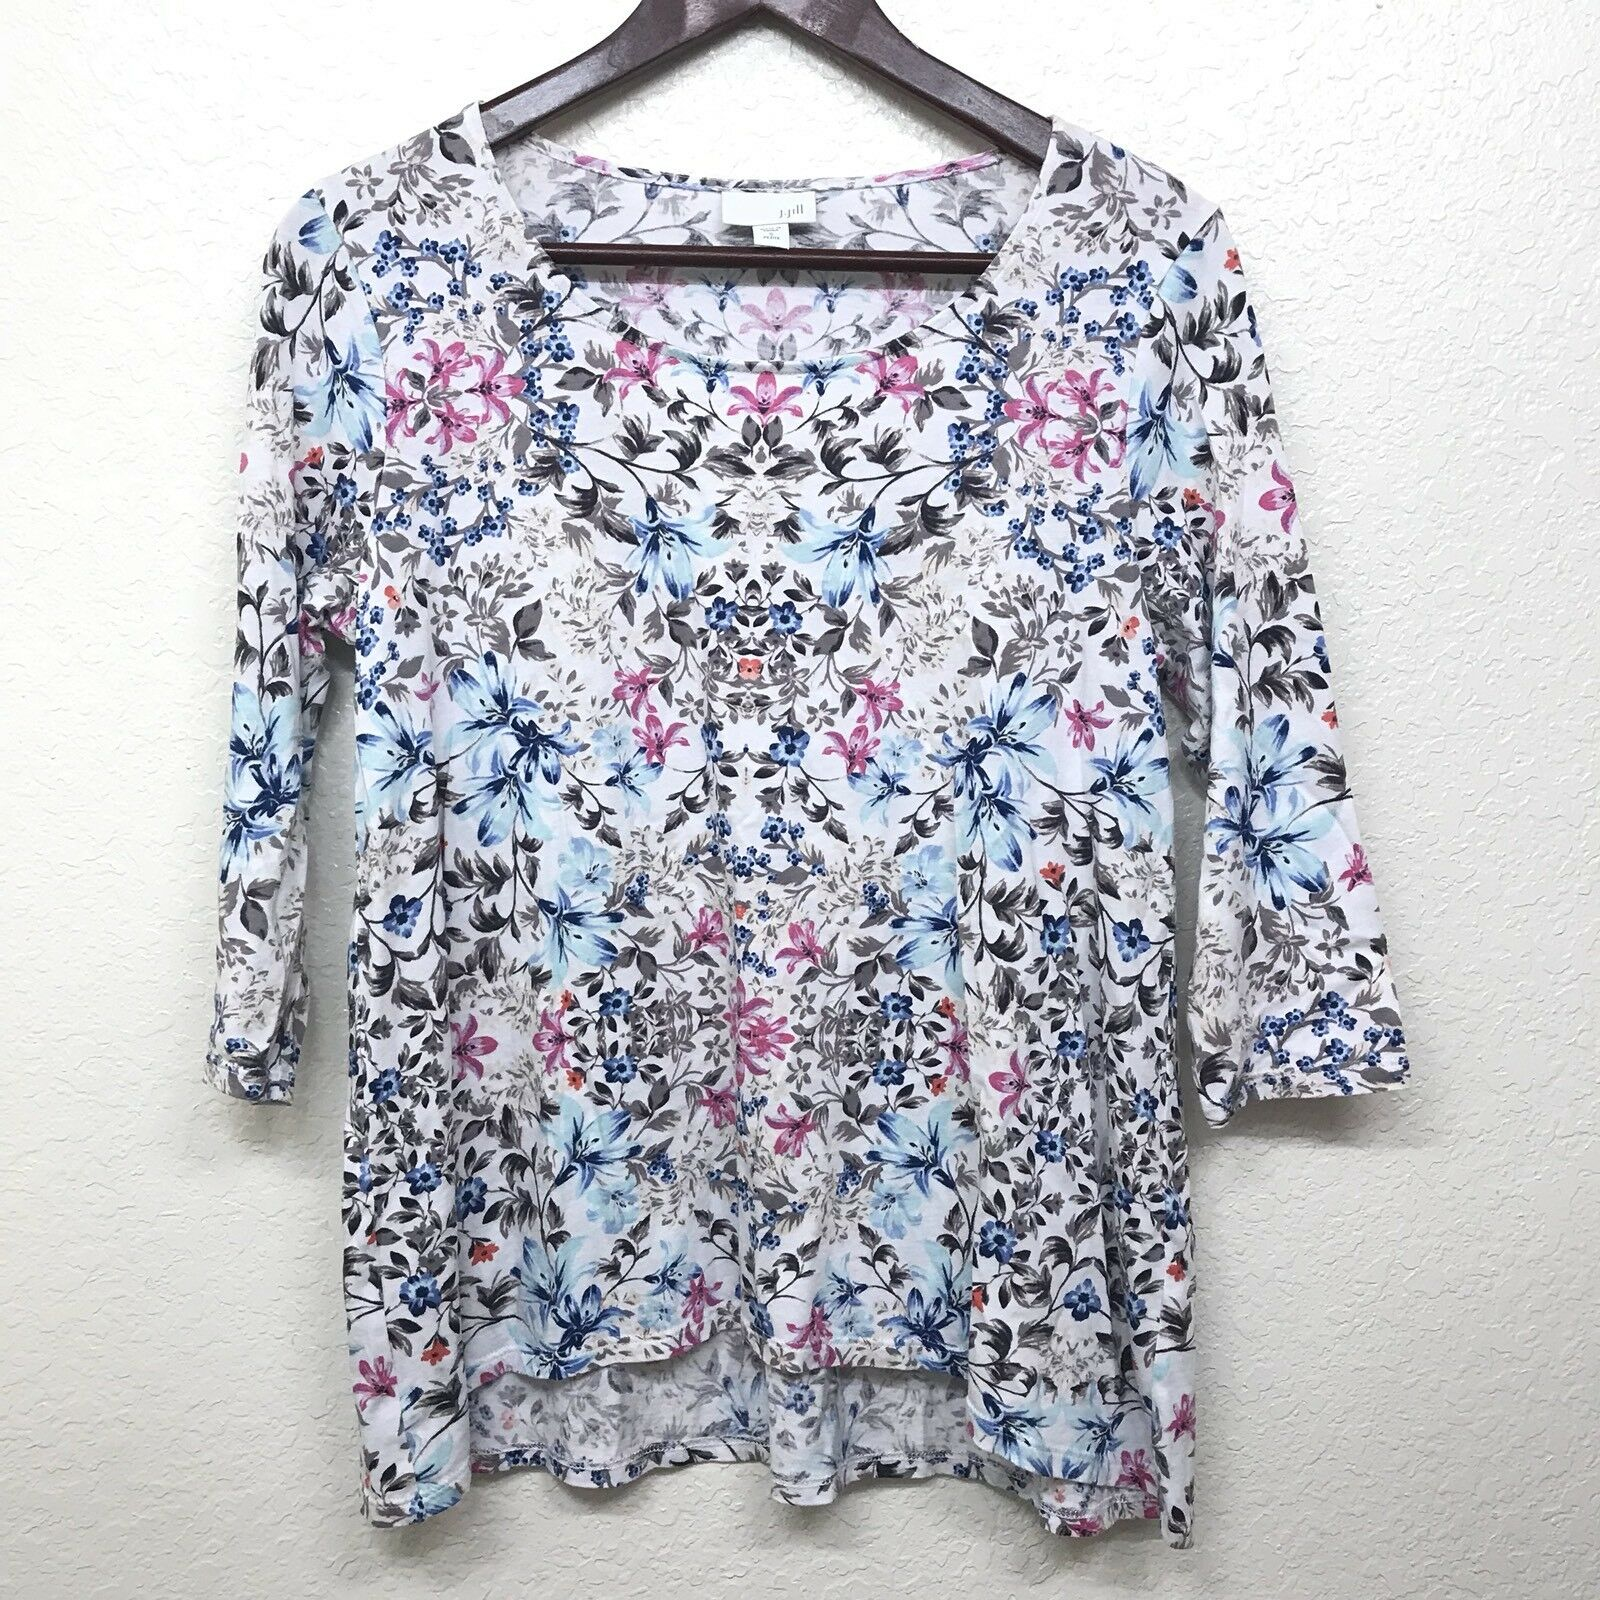 J Jill Womens Floral High Low 3 4 Sleeve Top Size Small Petite